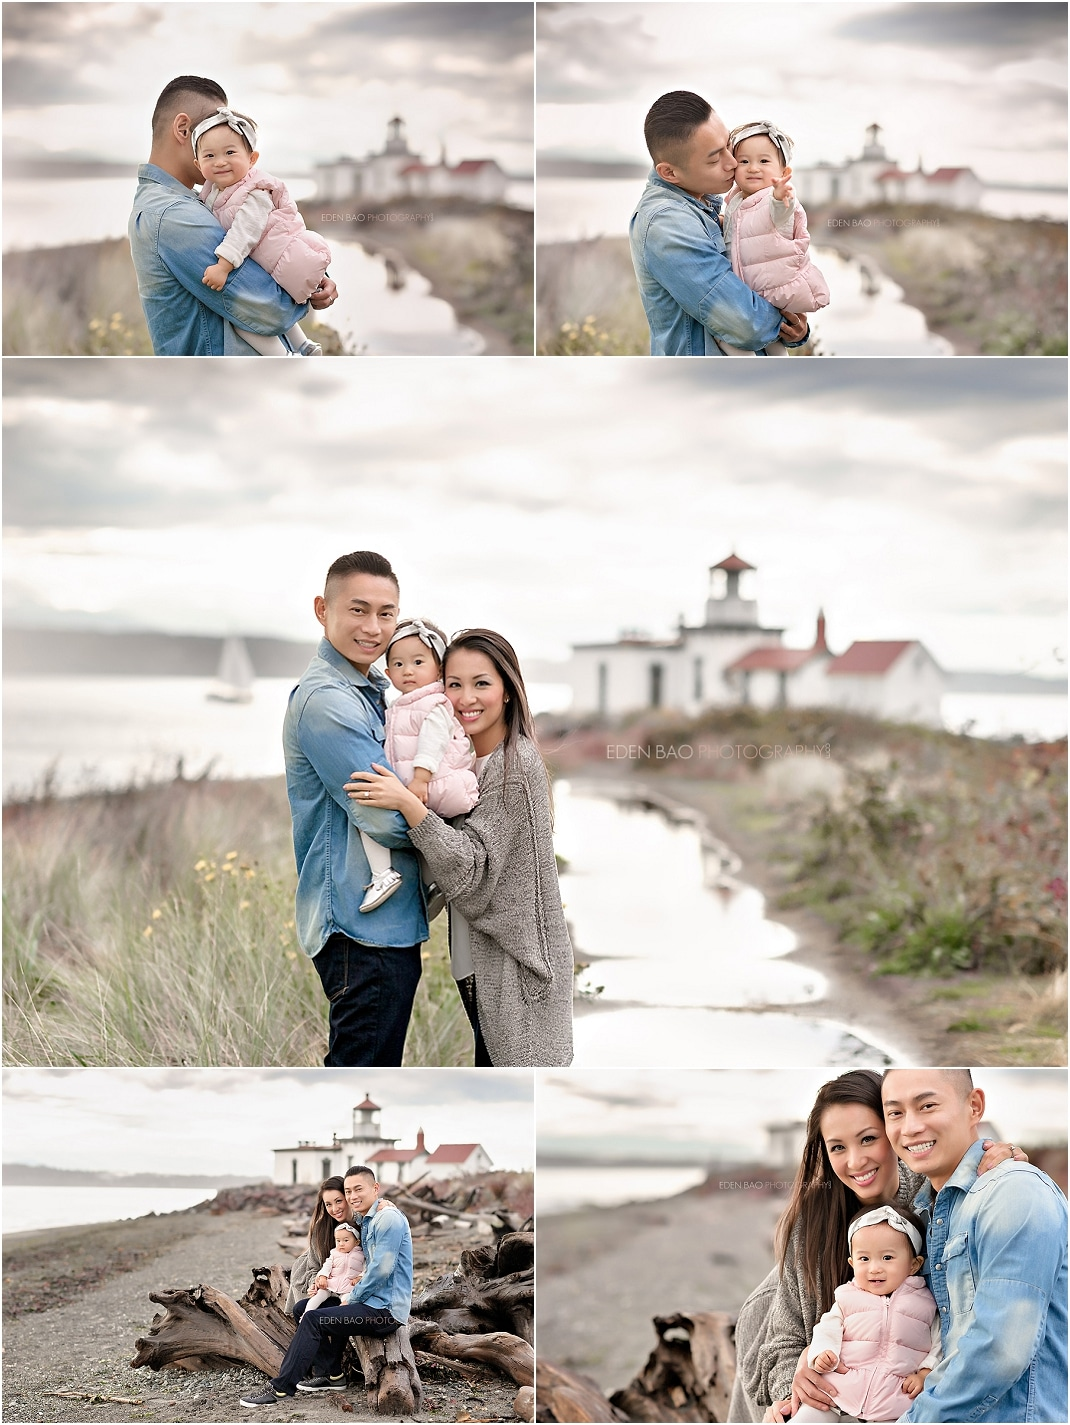 Bothell Baby Photographer Sienna Turns One Eden Bao Seattle Maternity Newborn Family Photographer